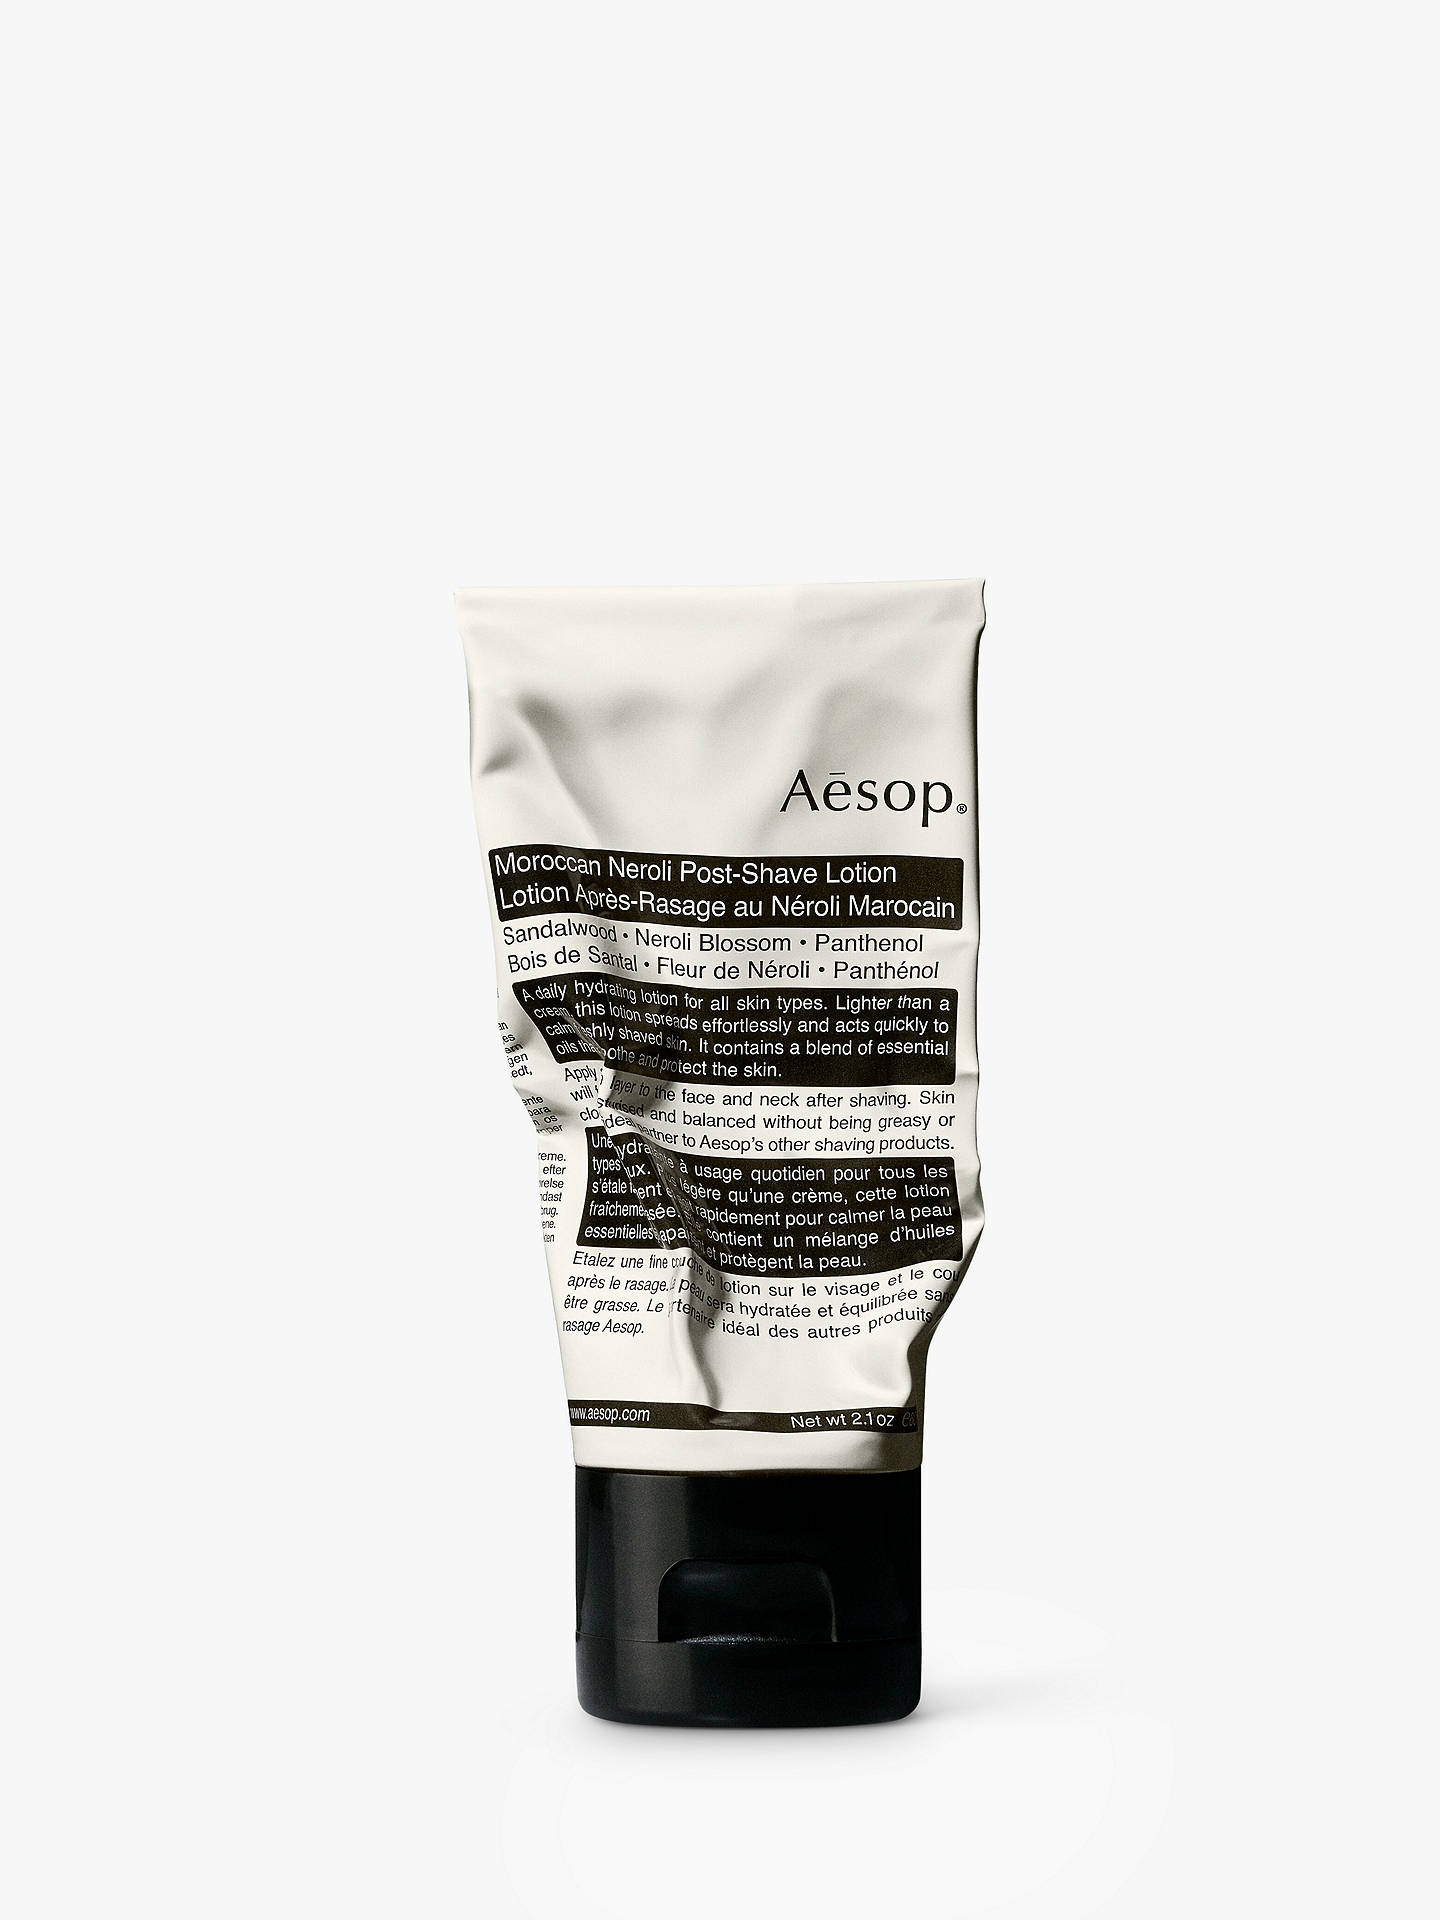 Buy Aesop Moroccan Neroli Post-Shave Lotion, 60ml Online at johnlewis.com